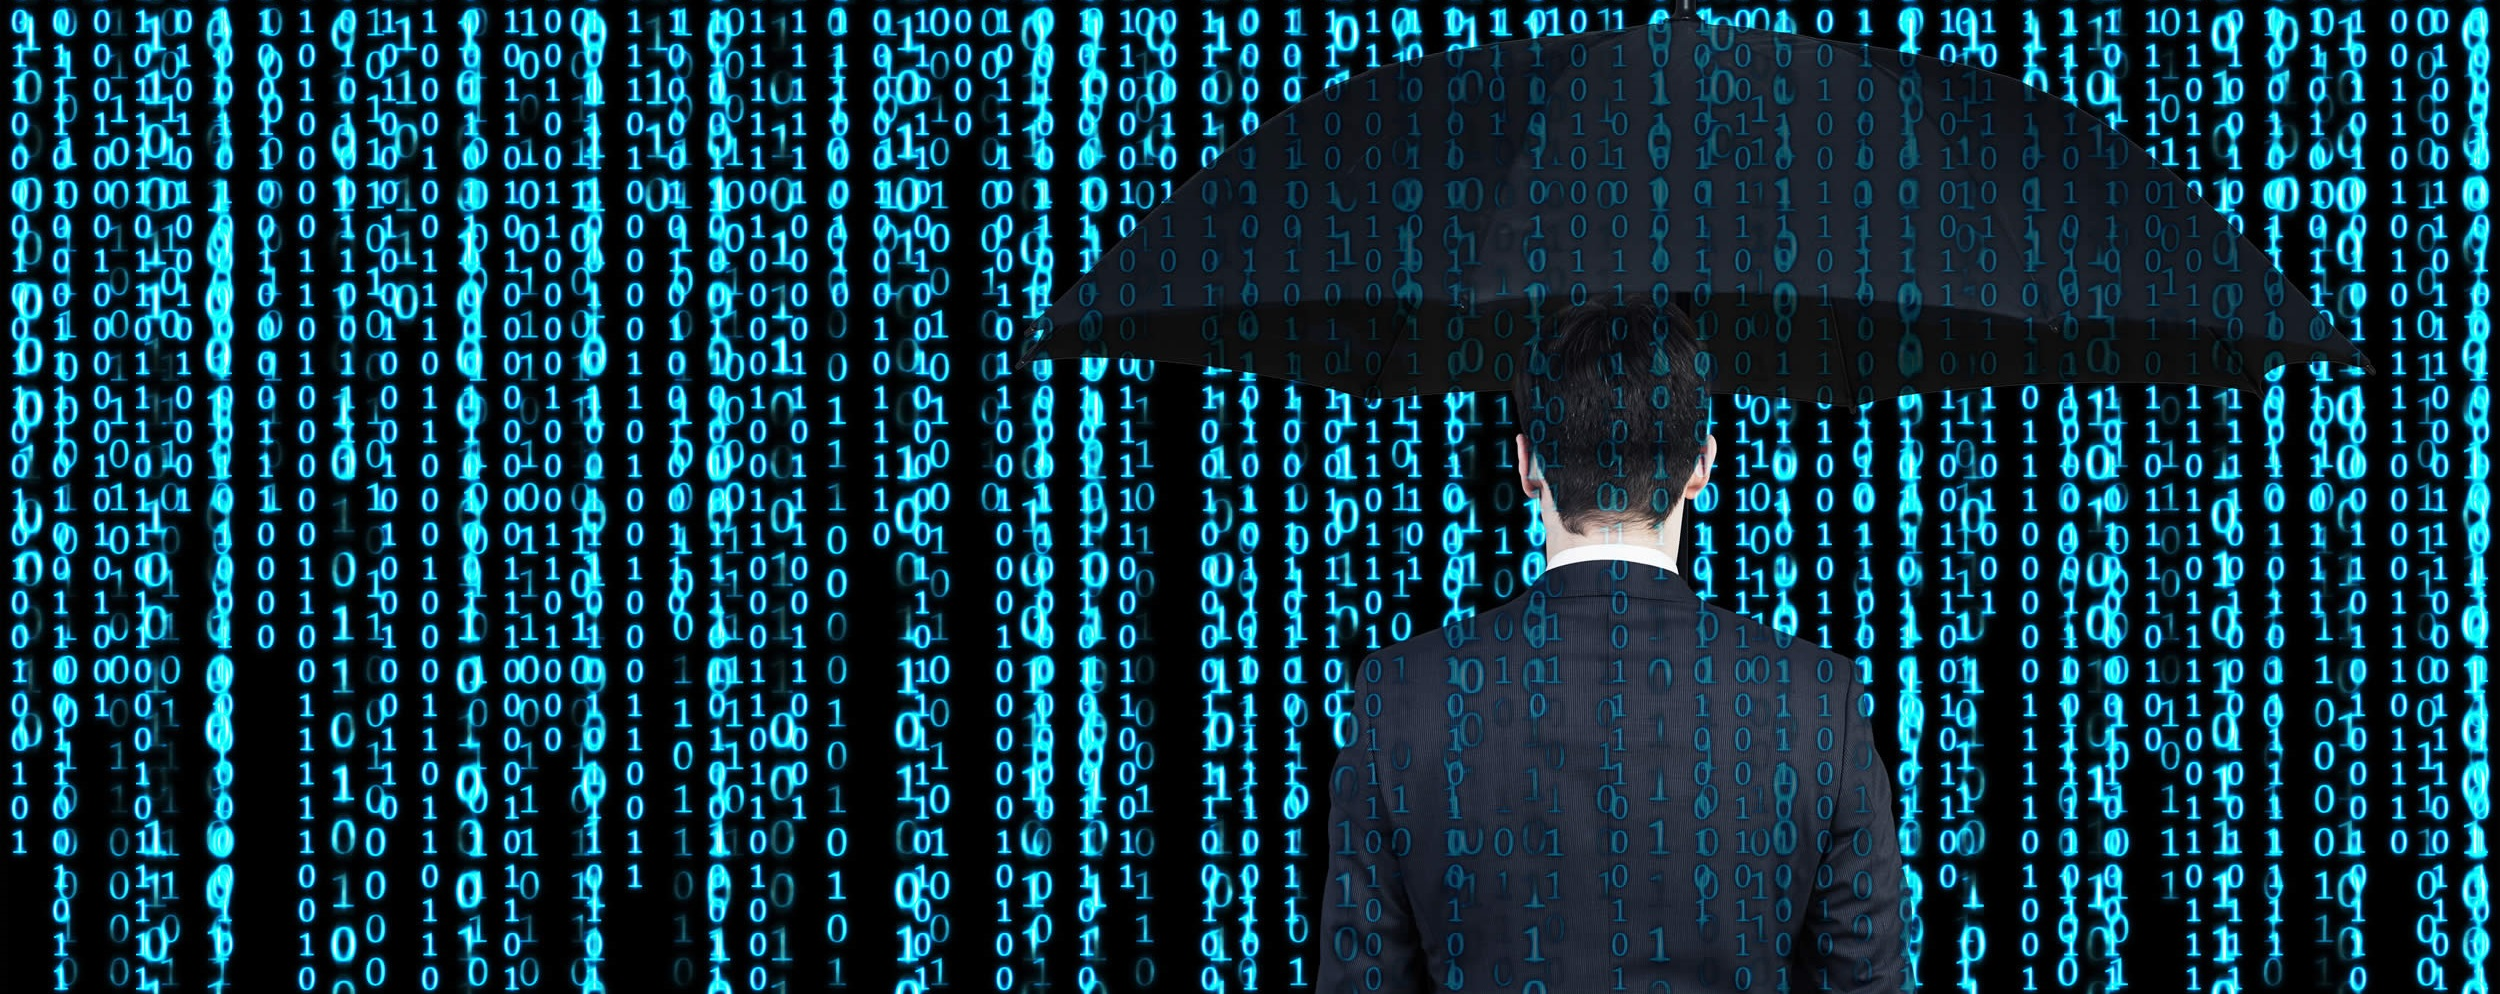 Cyber insurance for companies: 7 things to know